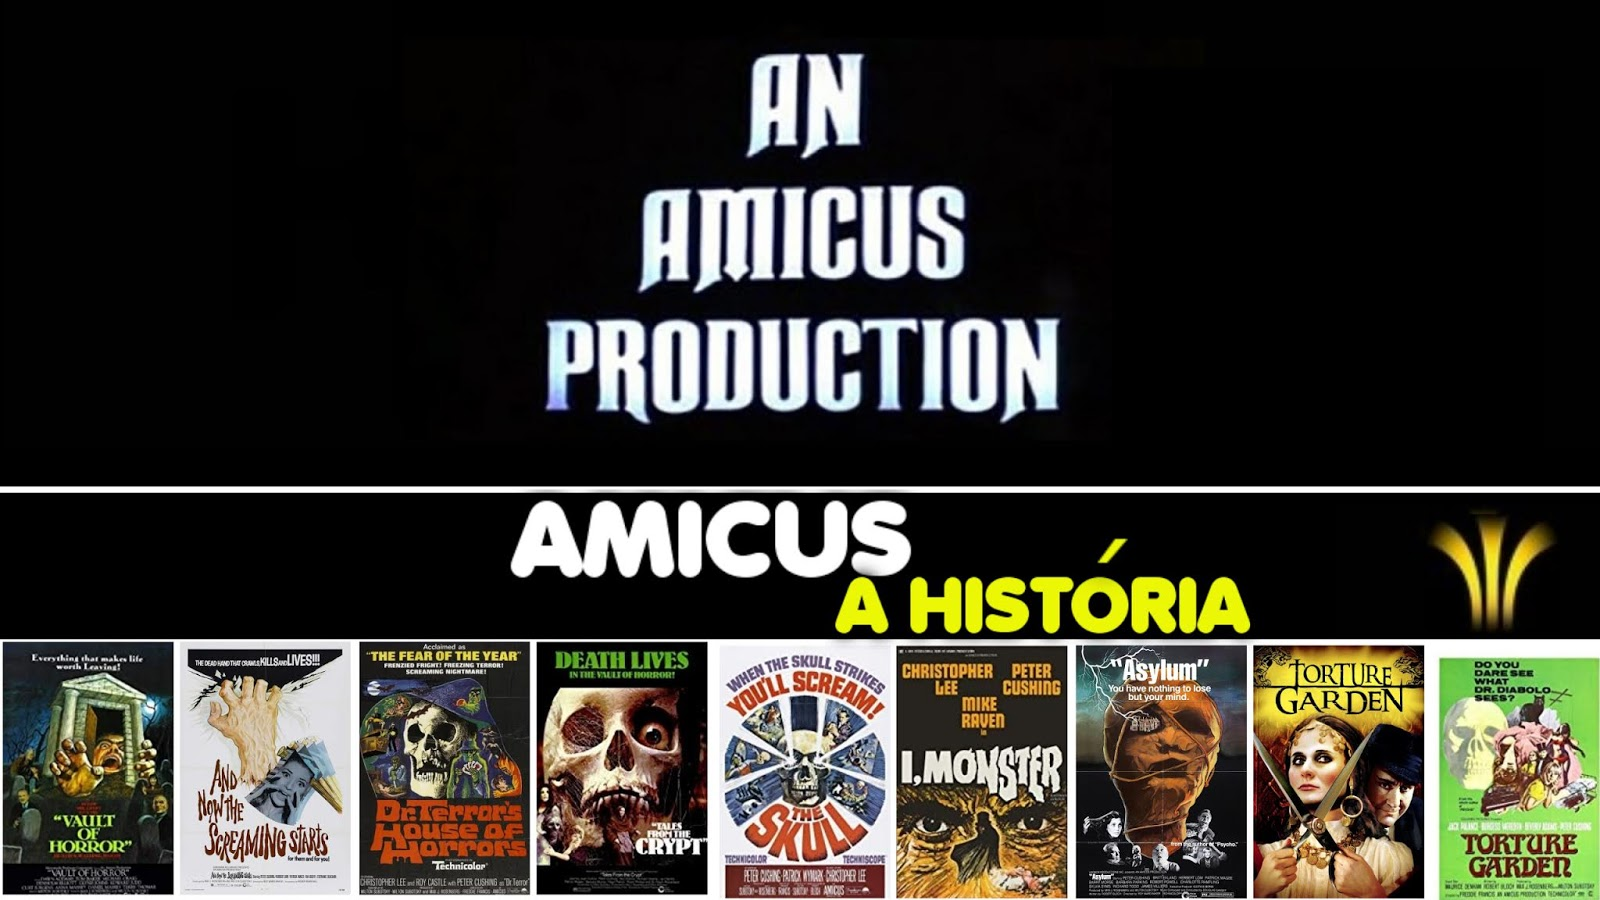 amicus-productions-historia